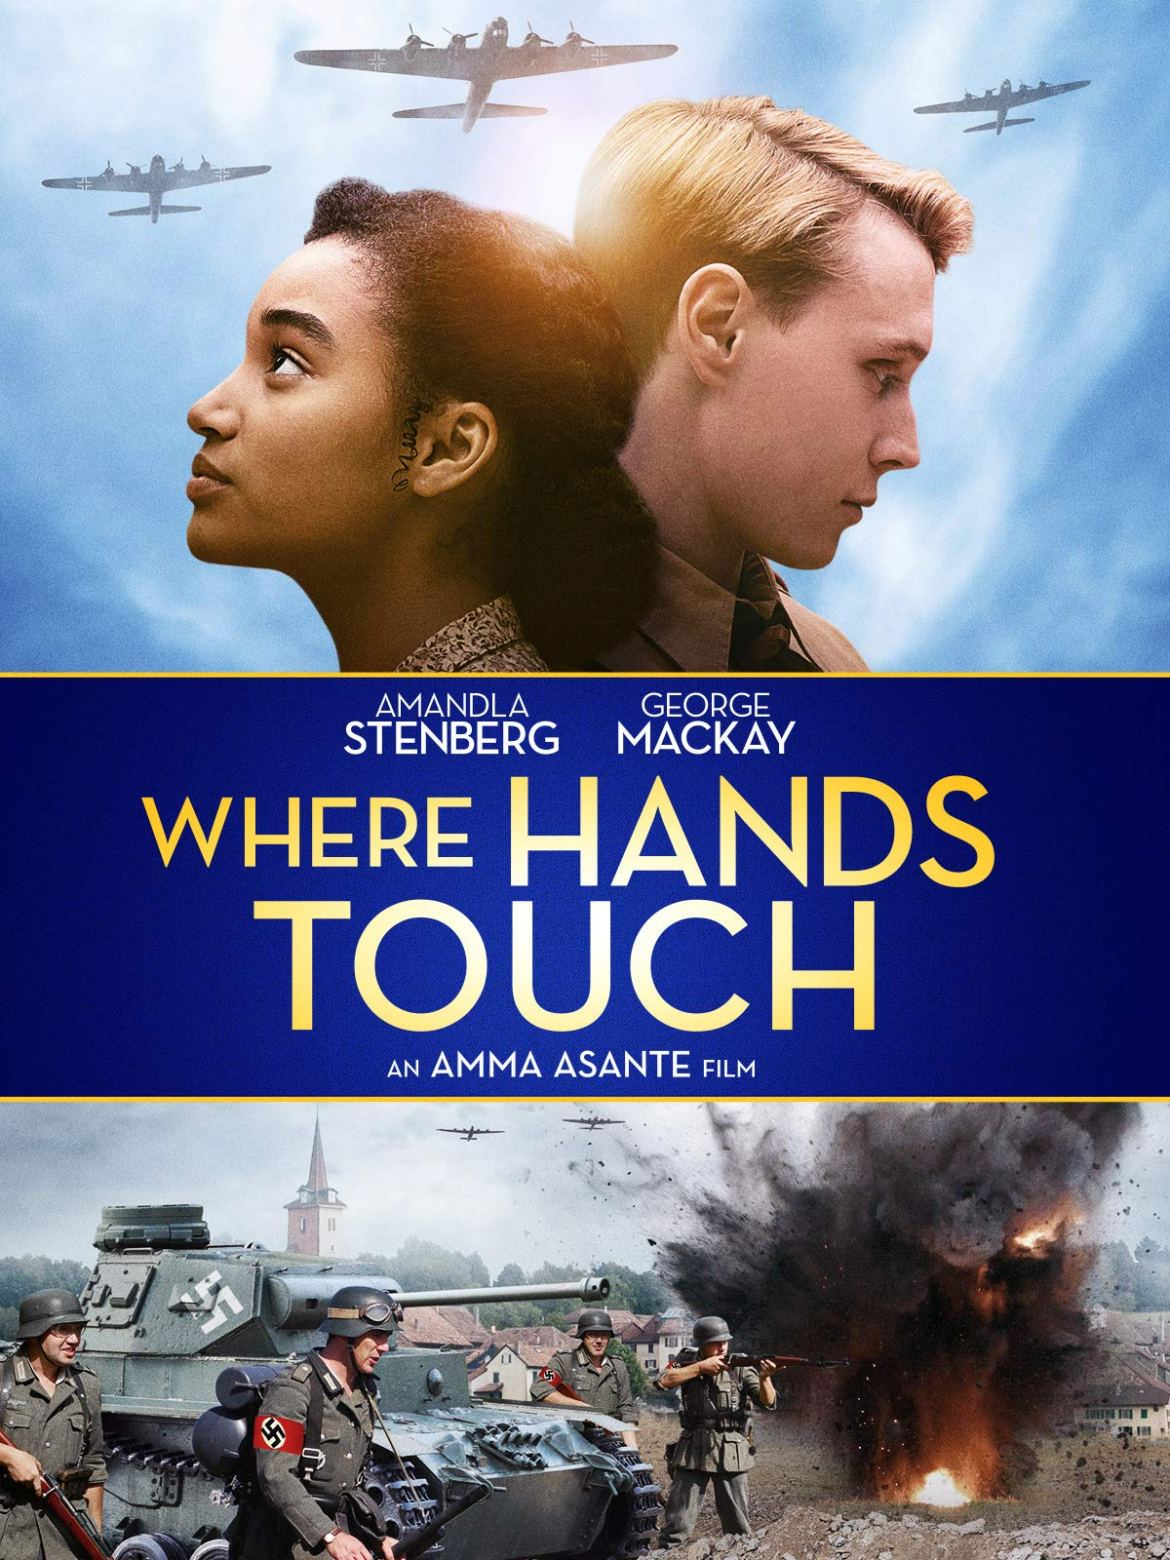 Where hands touch review.